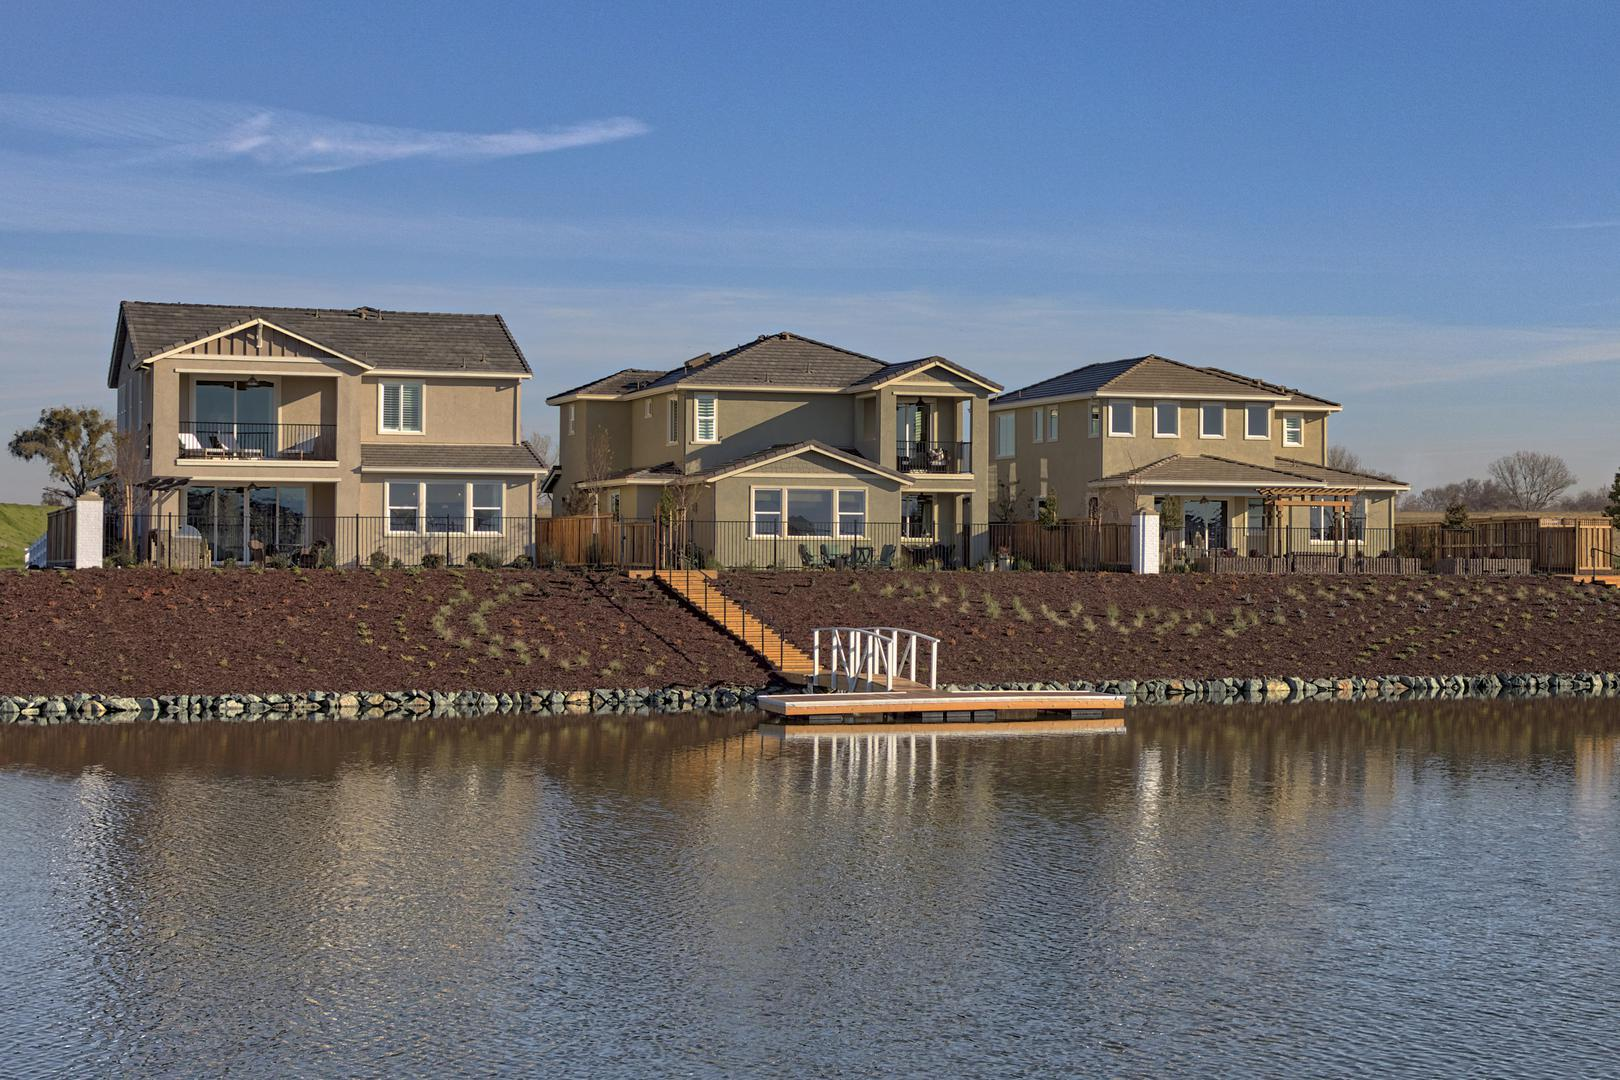 Homes on the Lakefront at River Islands